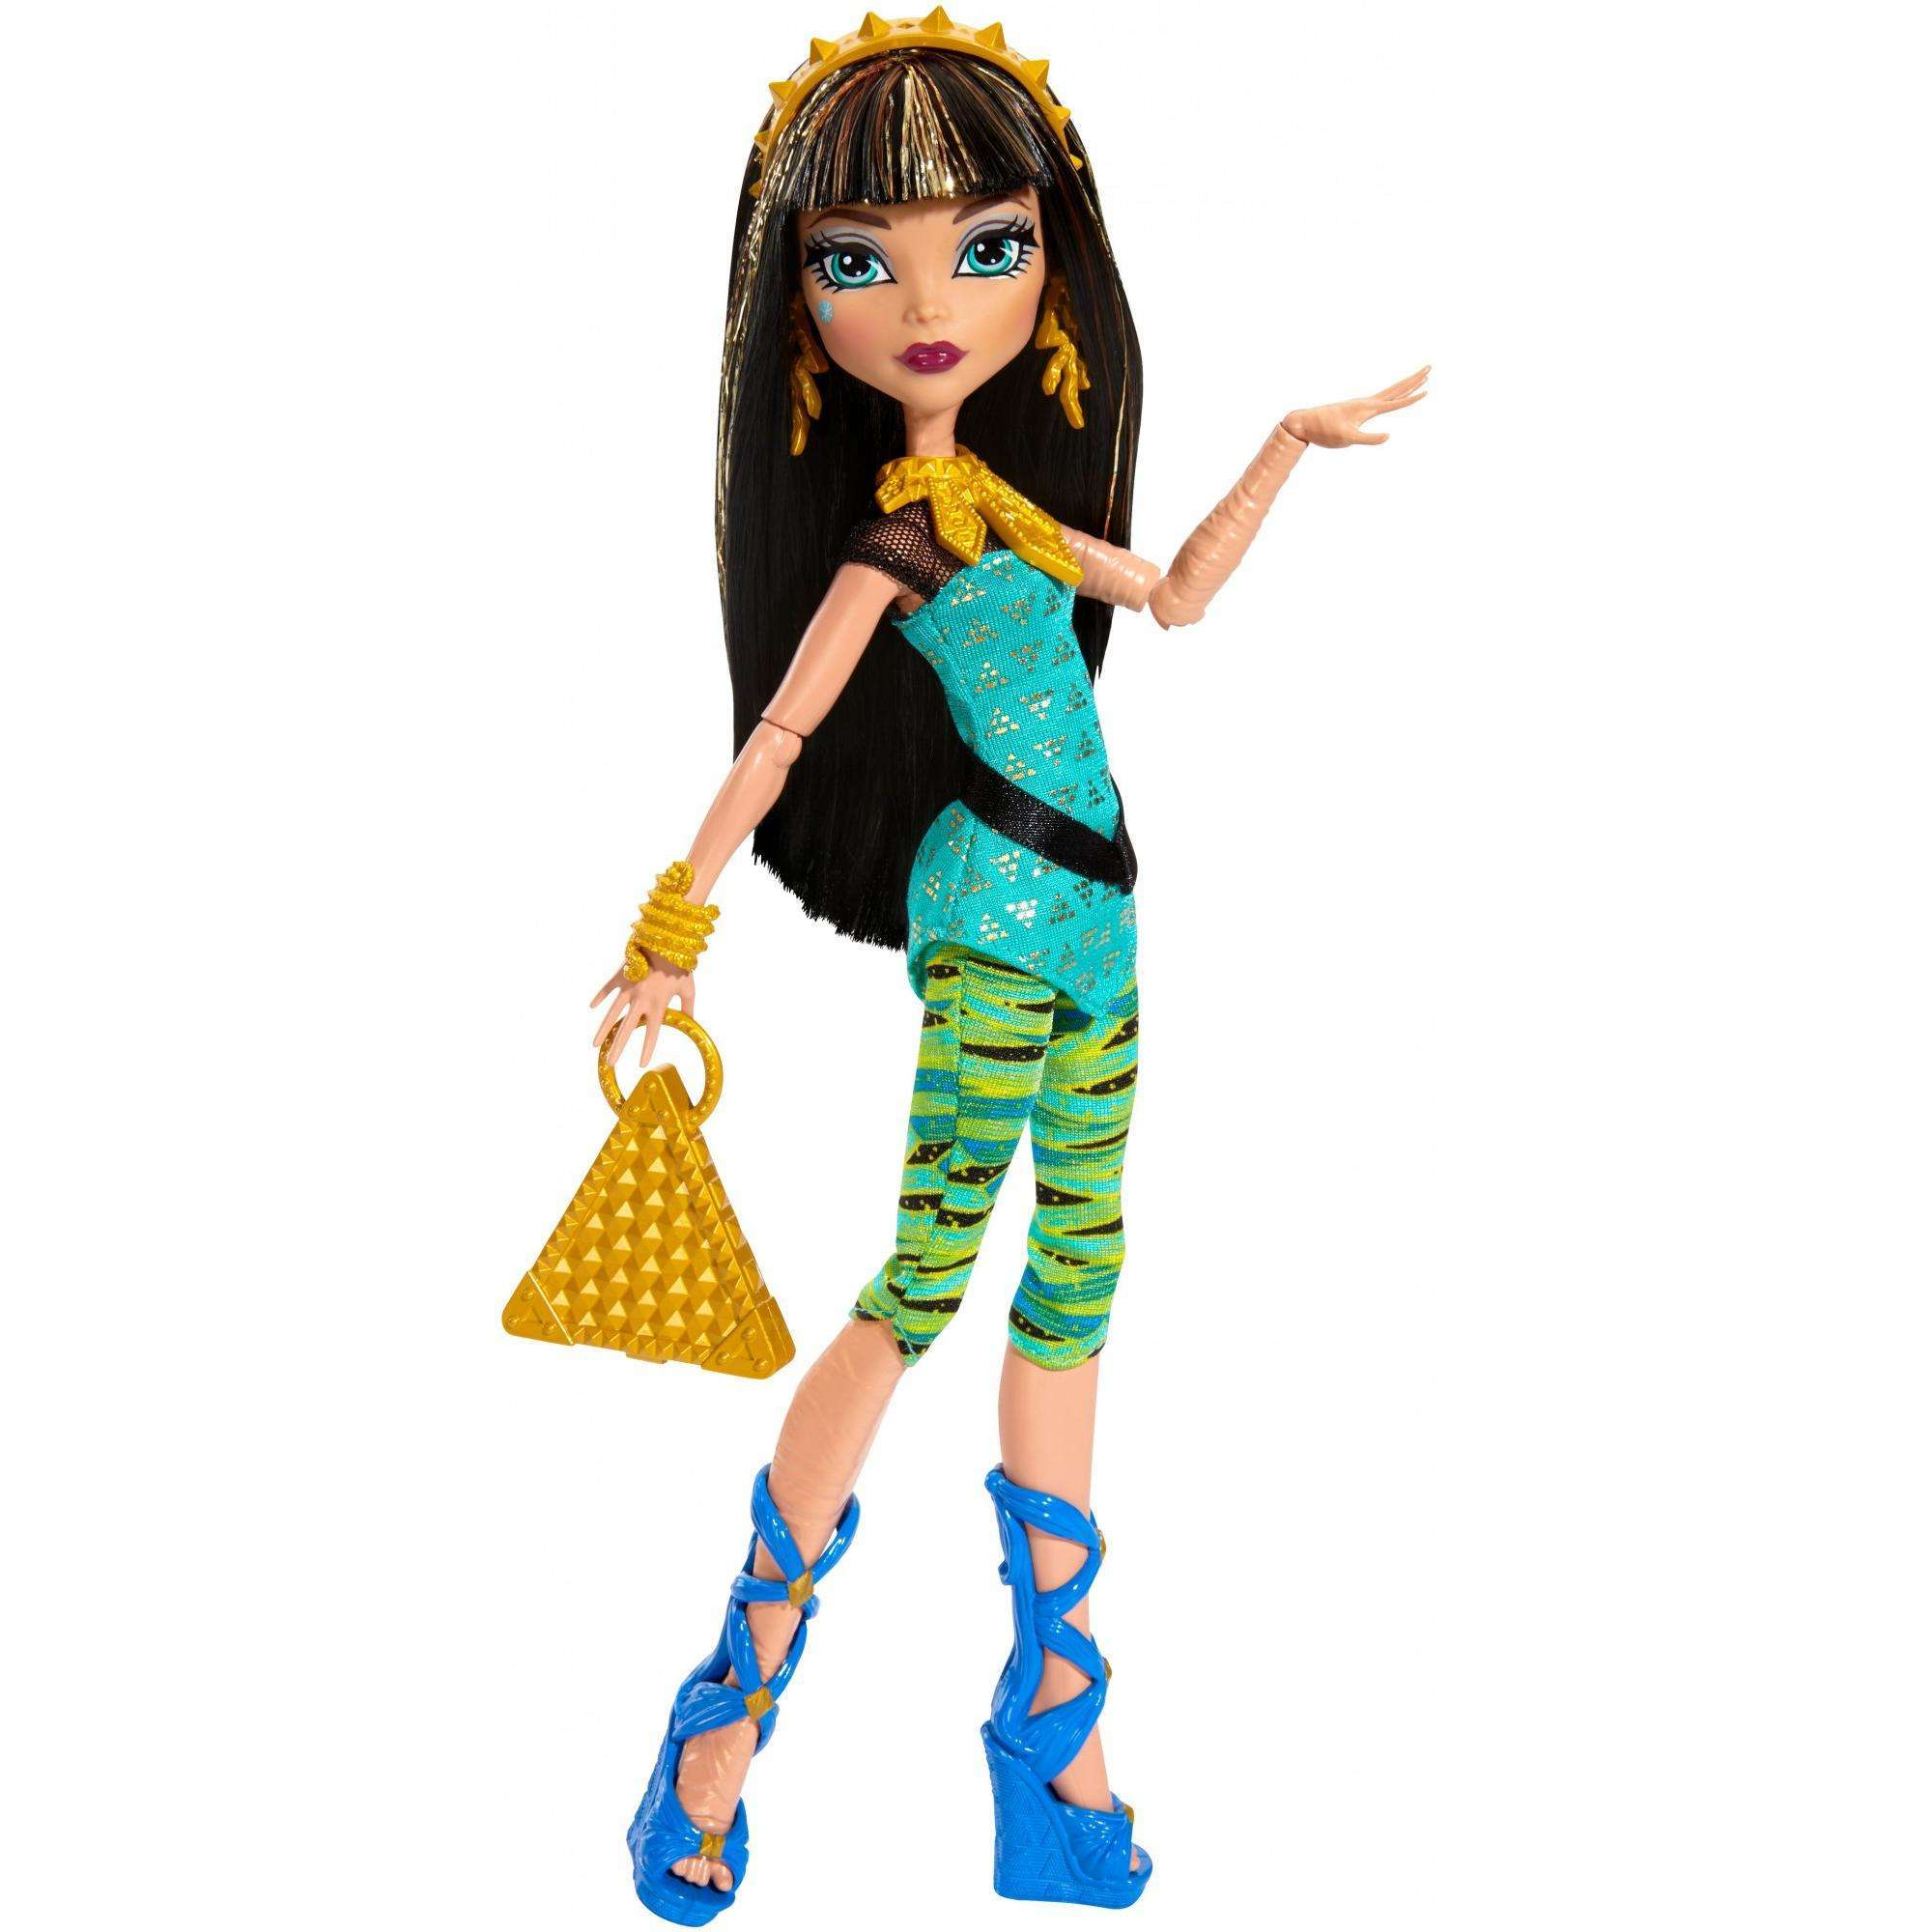 Monster High Signature Look Cleo De Nile Doll by MATTEL INC.